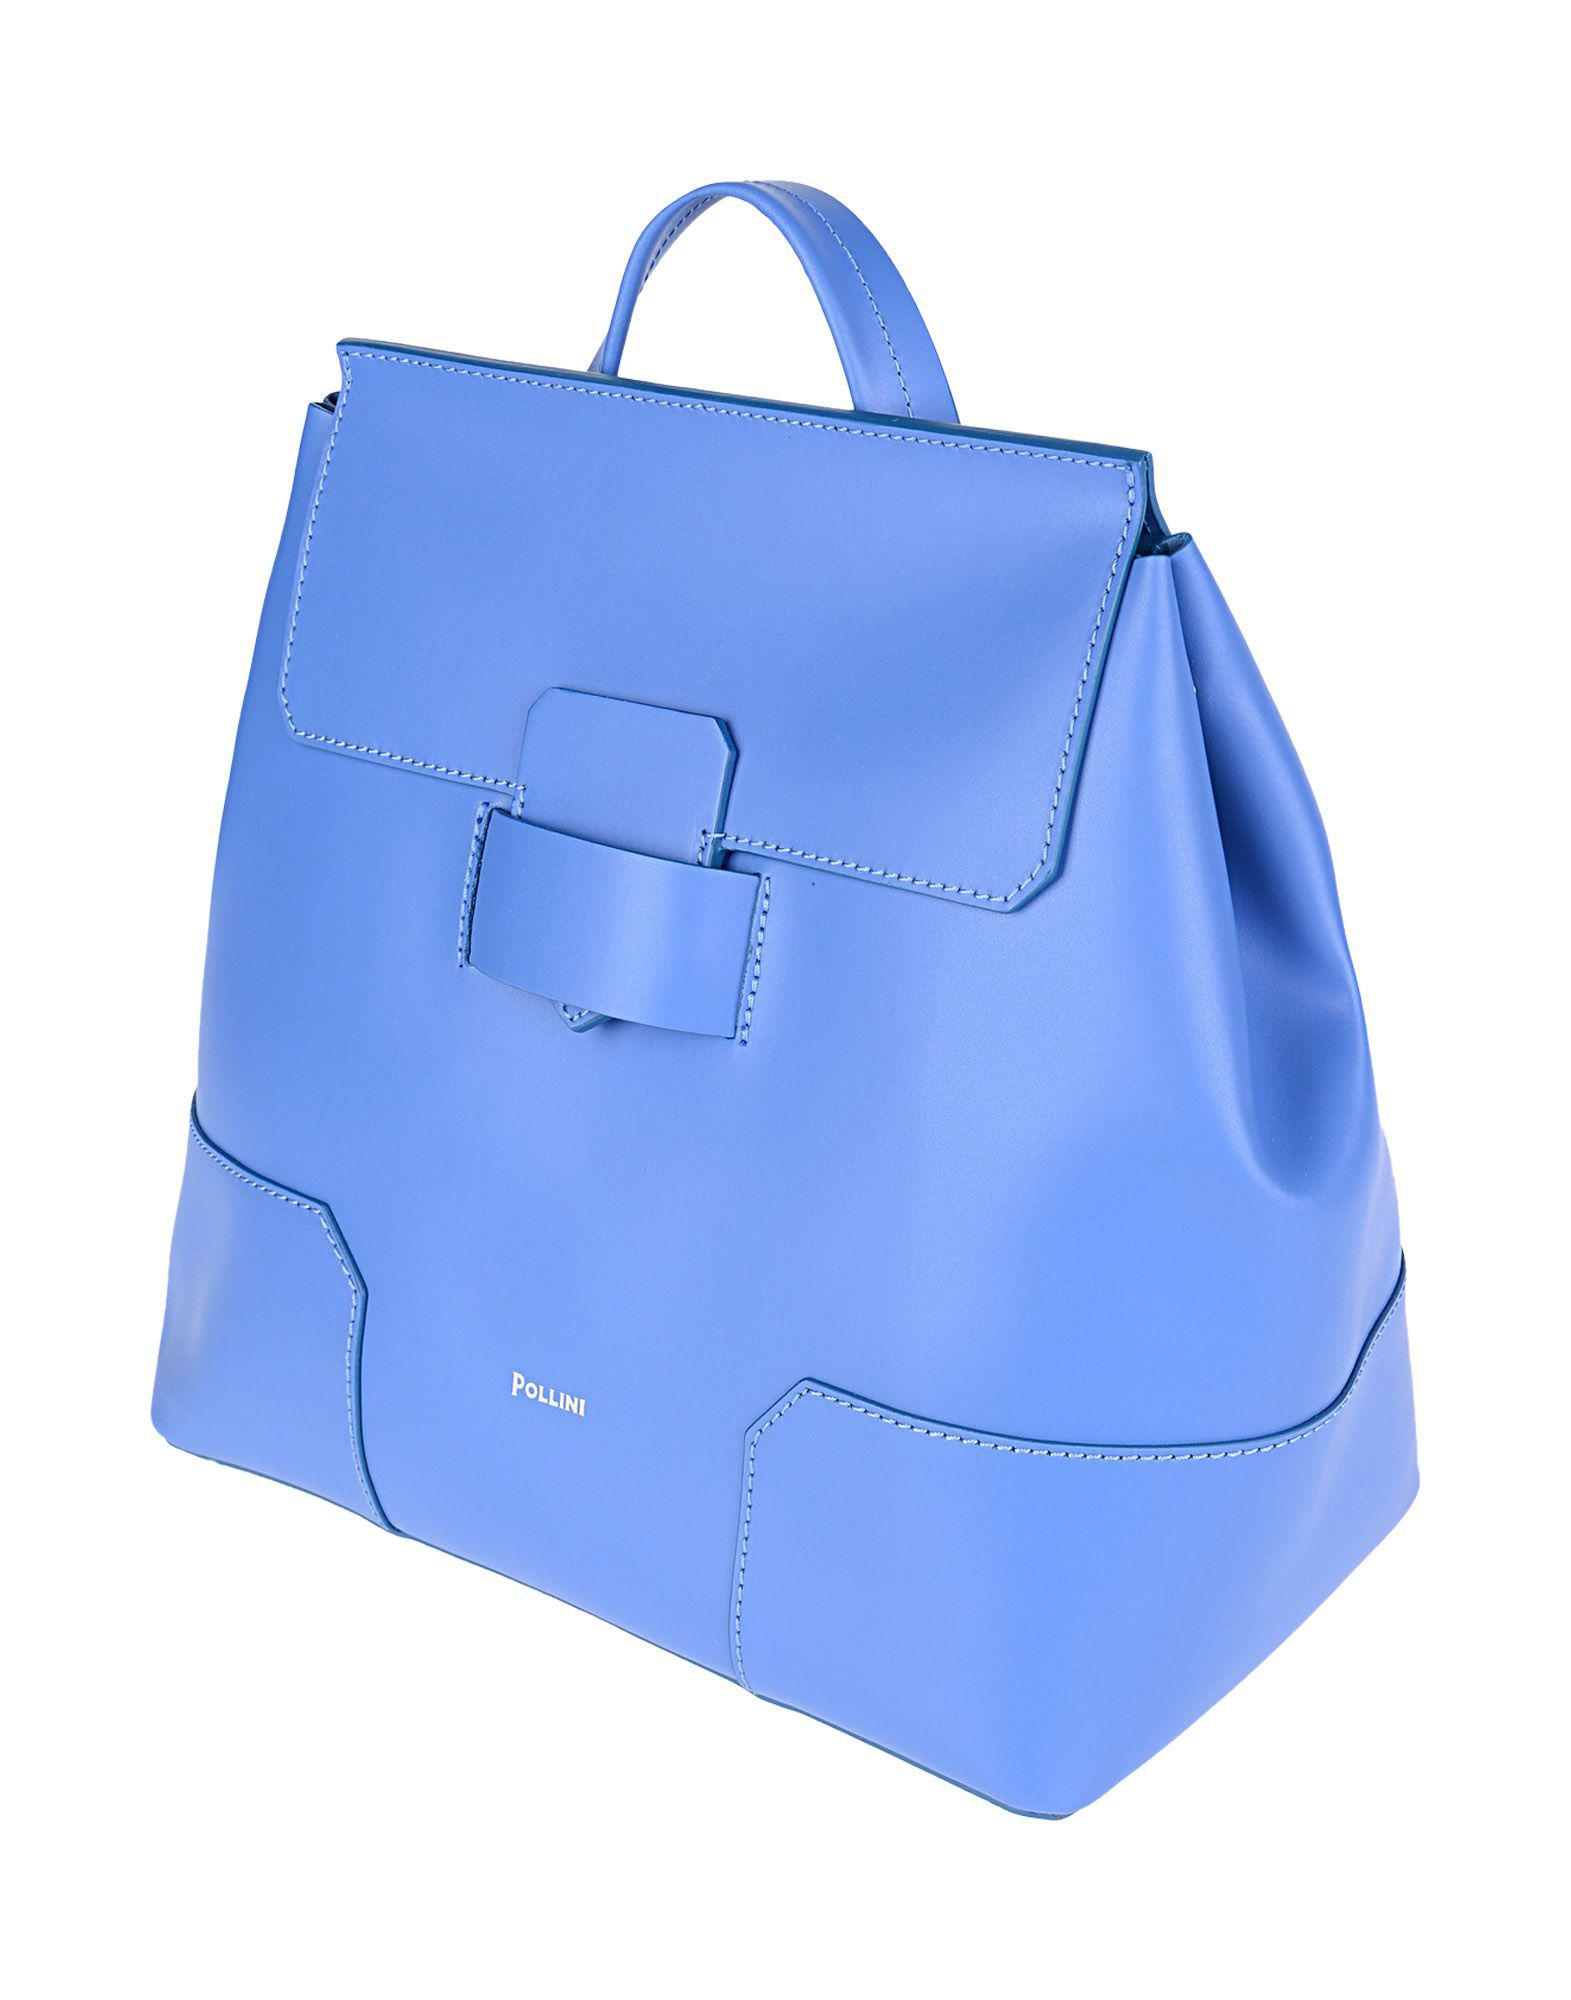 BAGS - Backpacks & Bum bags Pollini Hm7gcuztLH